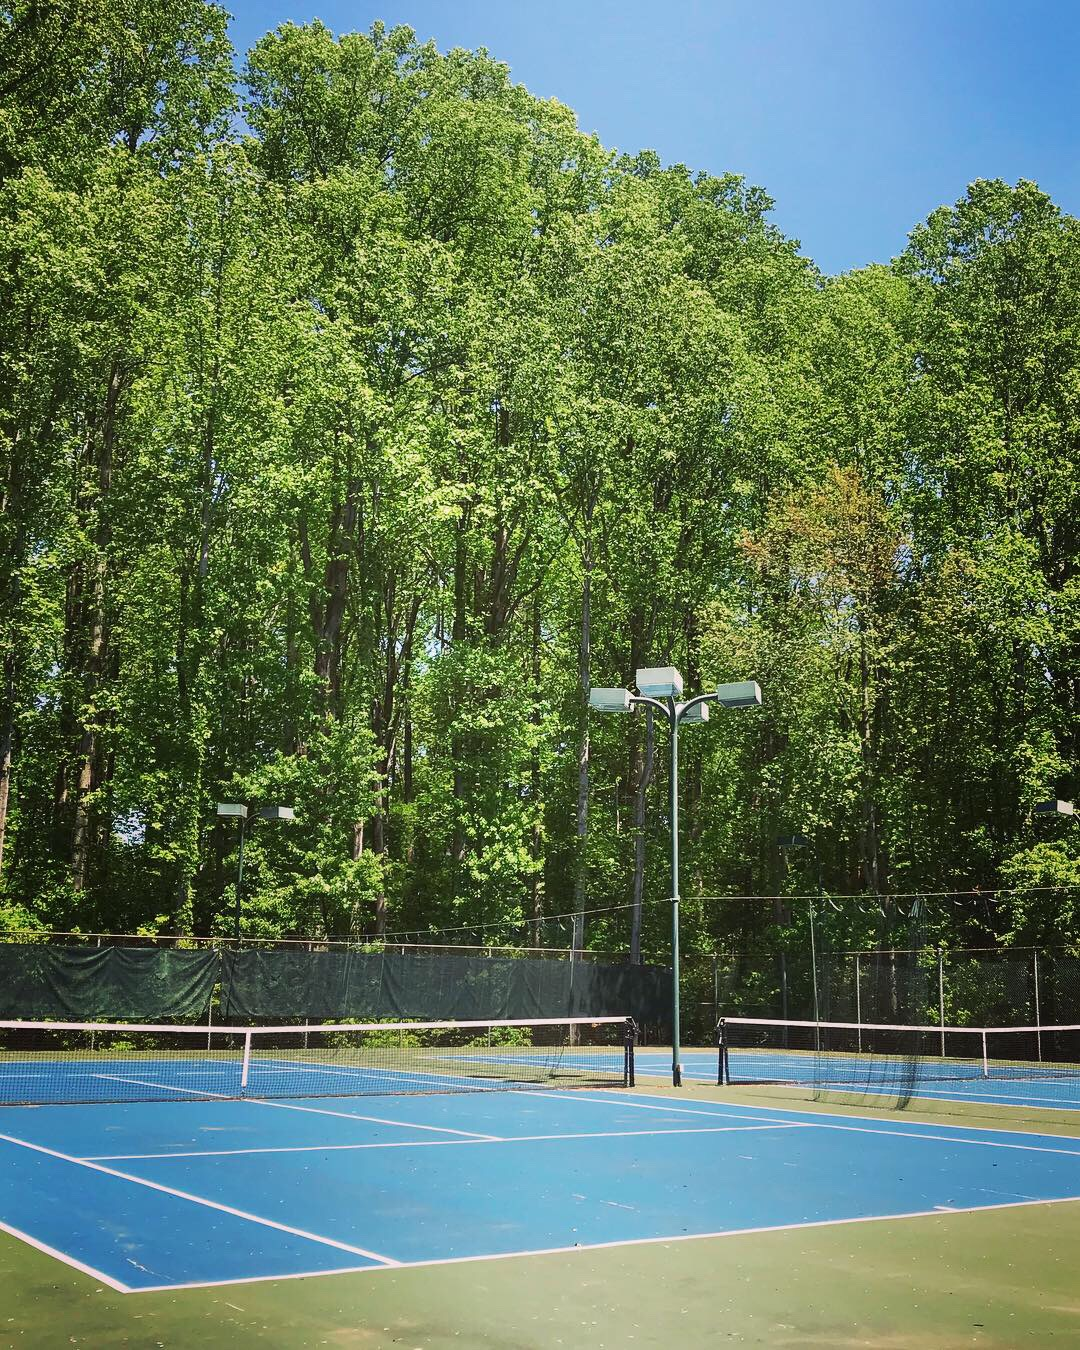 4 NVTL Tennis Courts in Northern Virginia with lighting